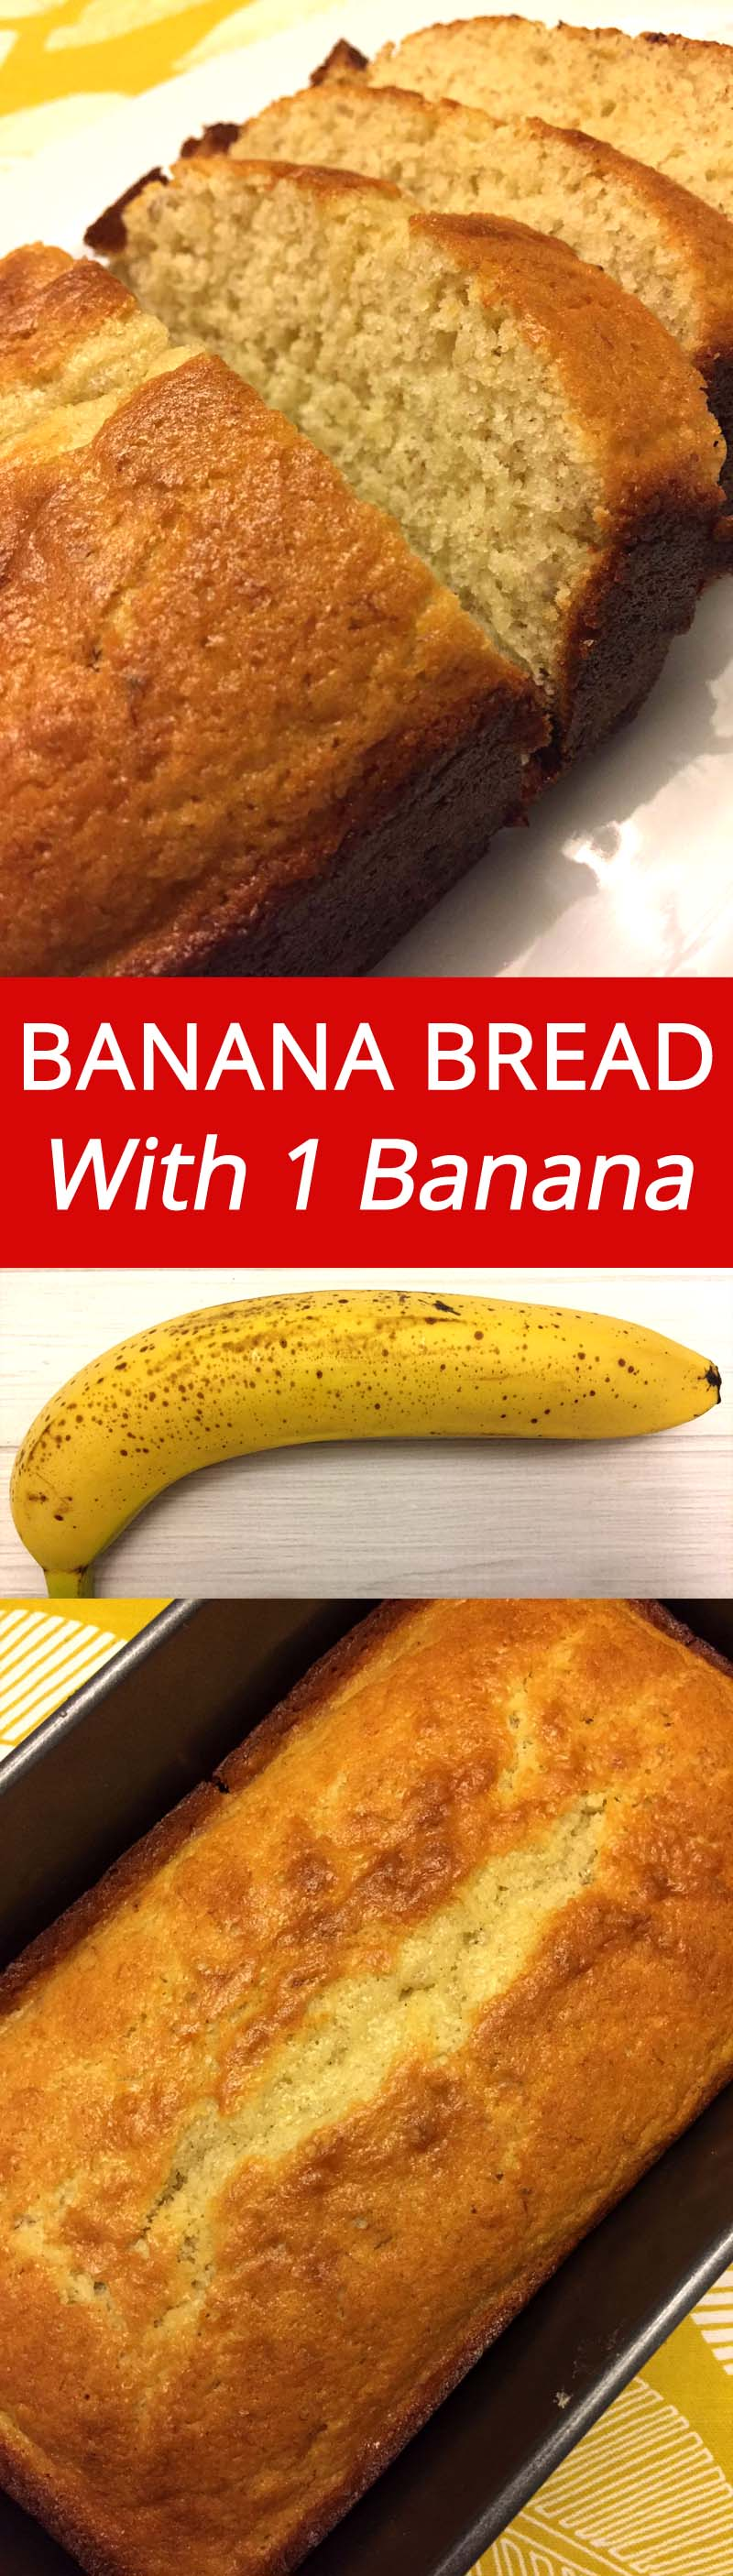 This one banana banana bread is amazing! Perfect texture and amazing banana taste! This is my favorite banana bread recipe!